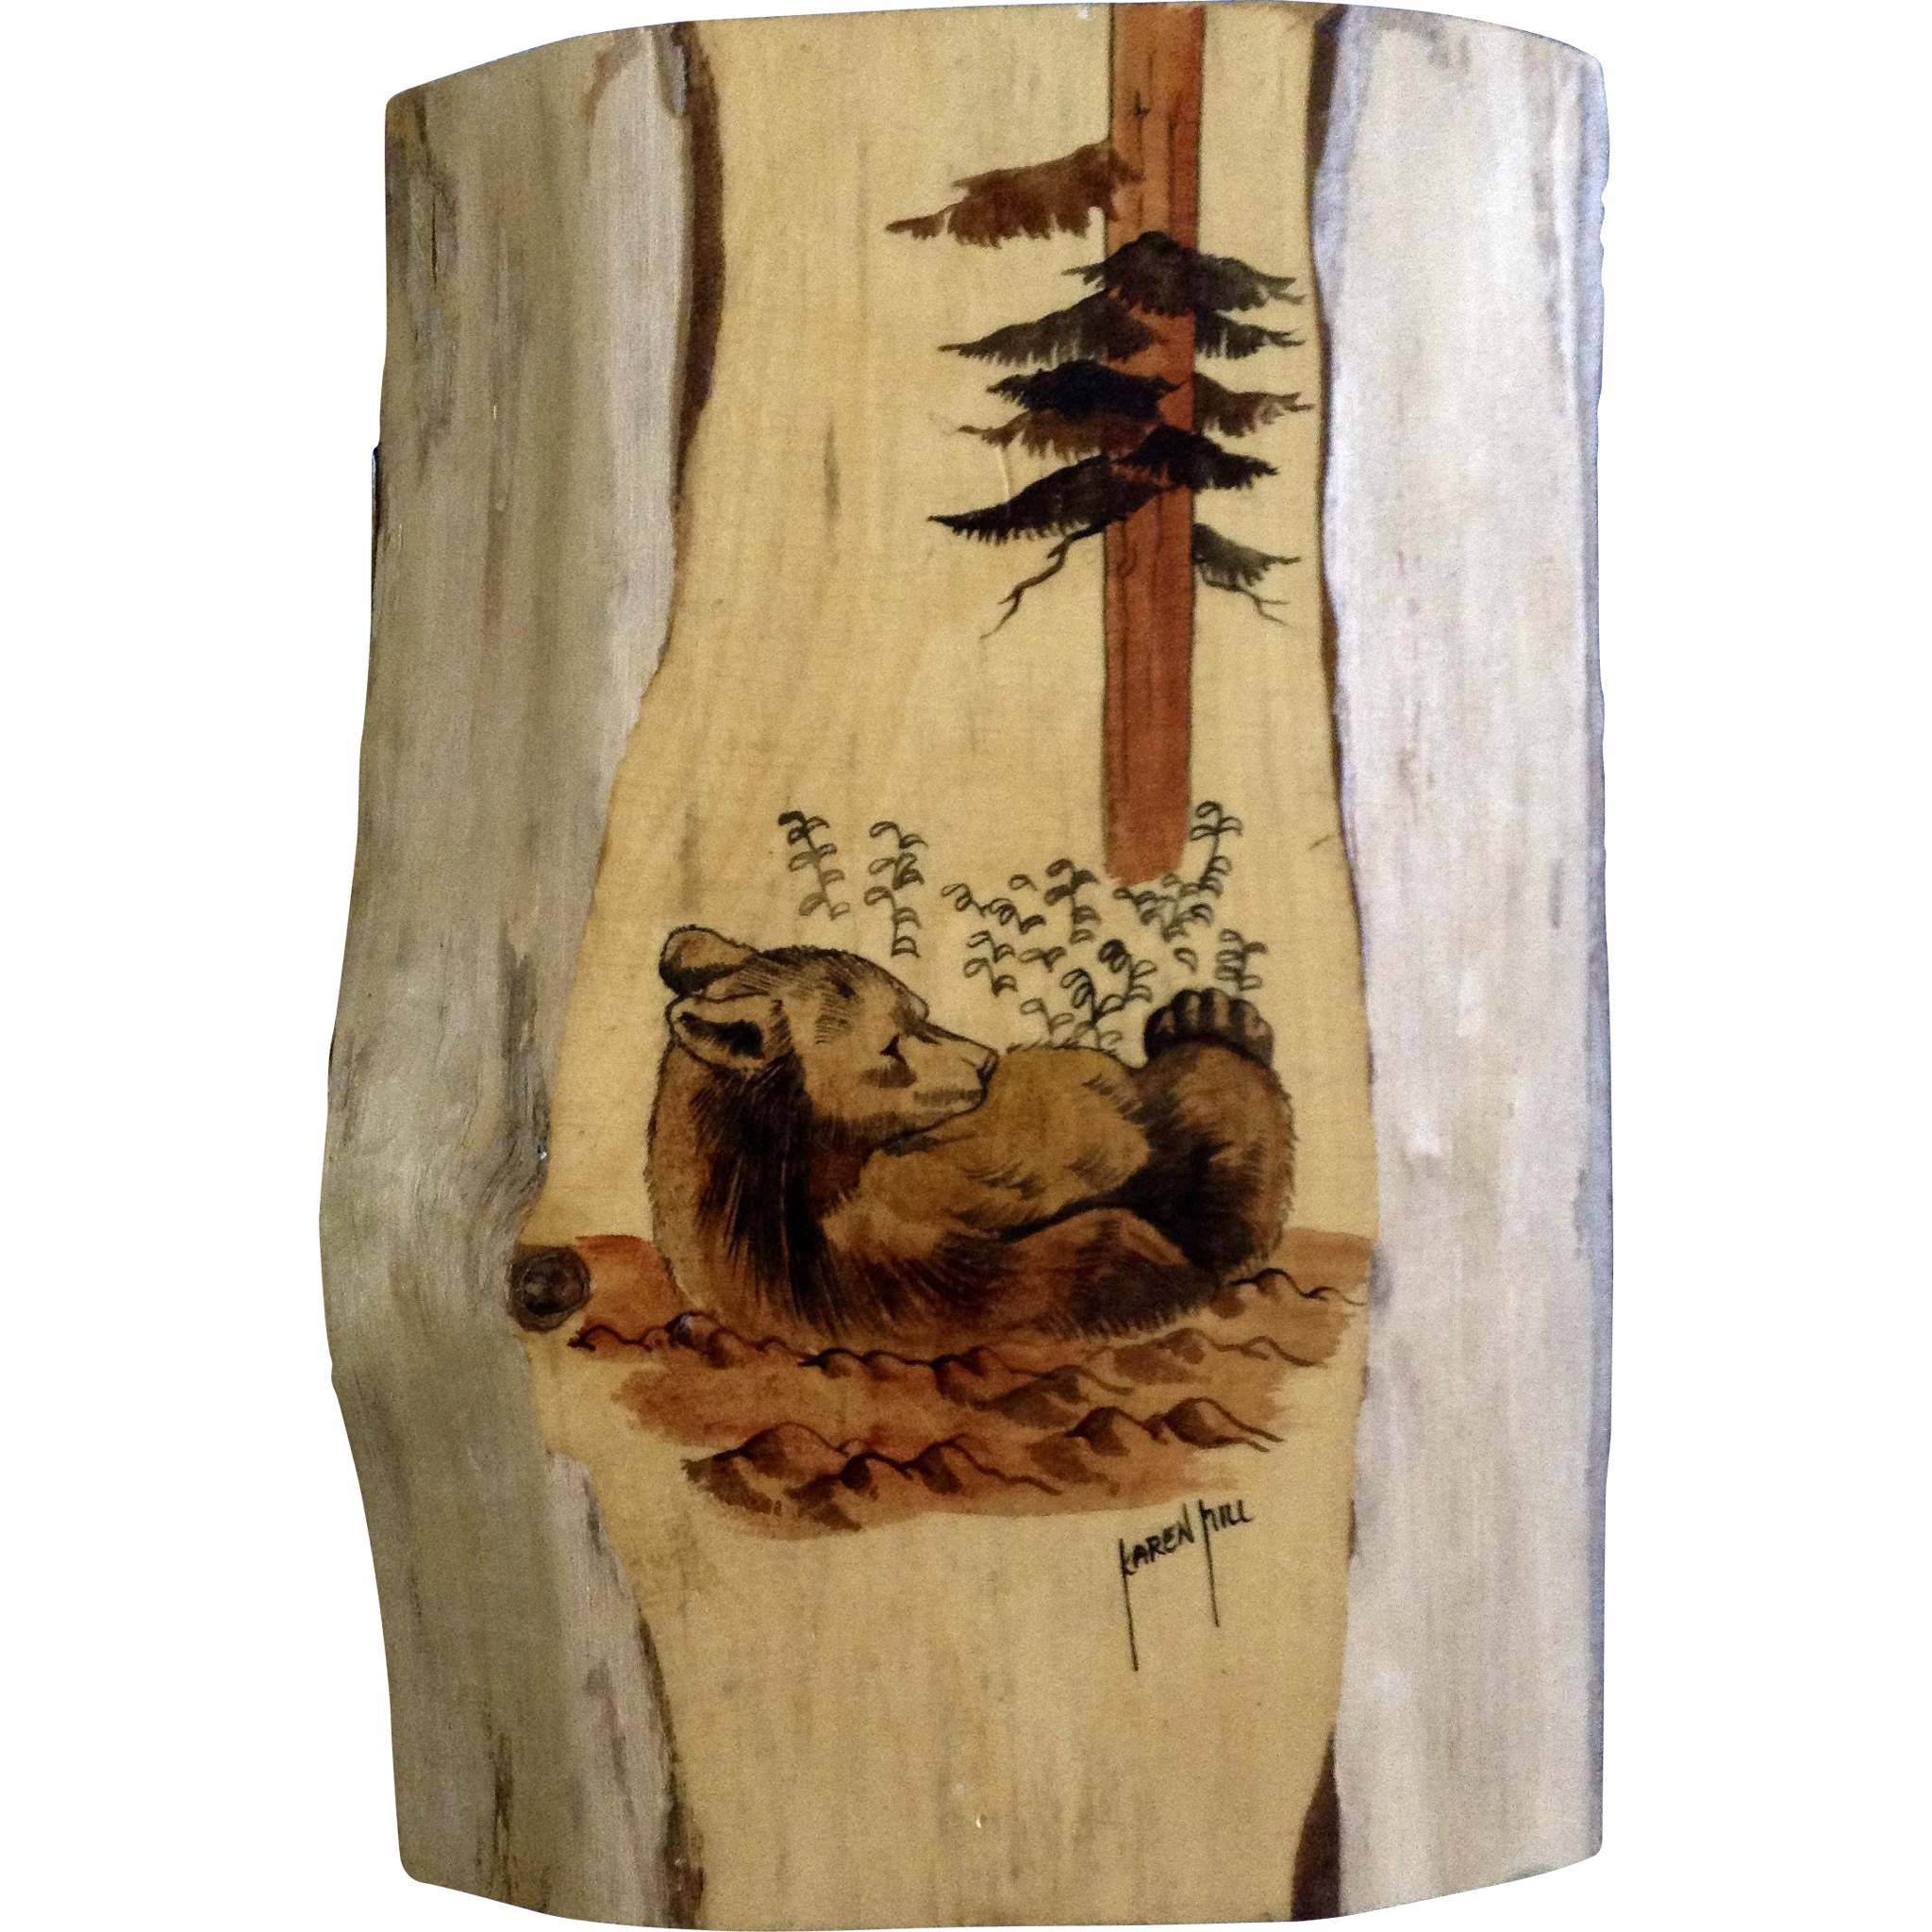 Karen hill watercolor painting on wood plank bear in the